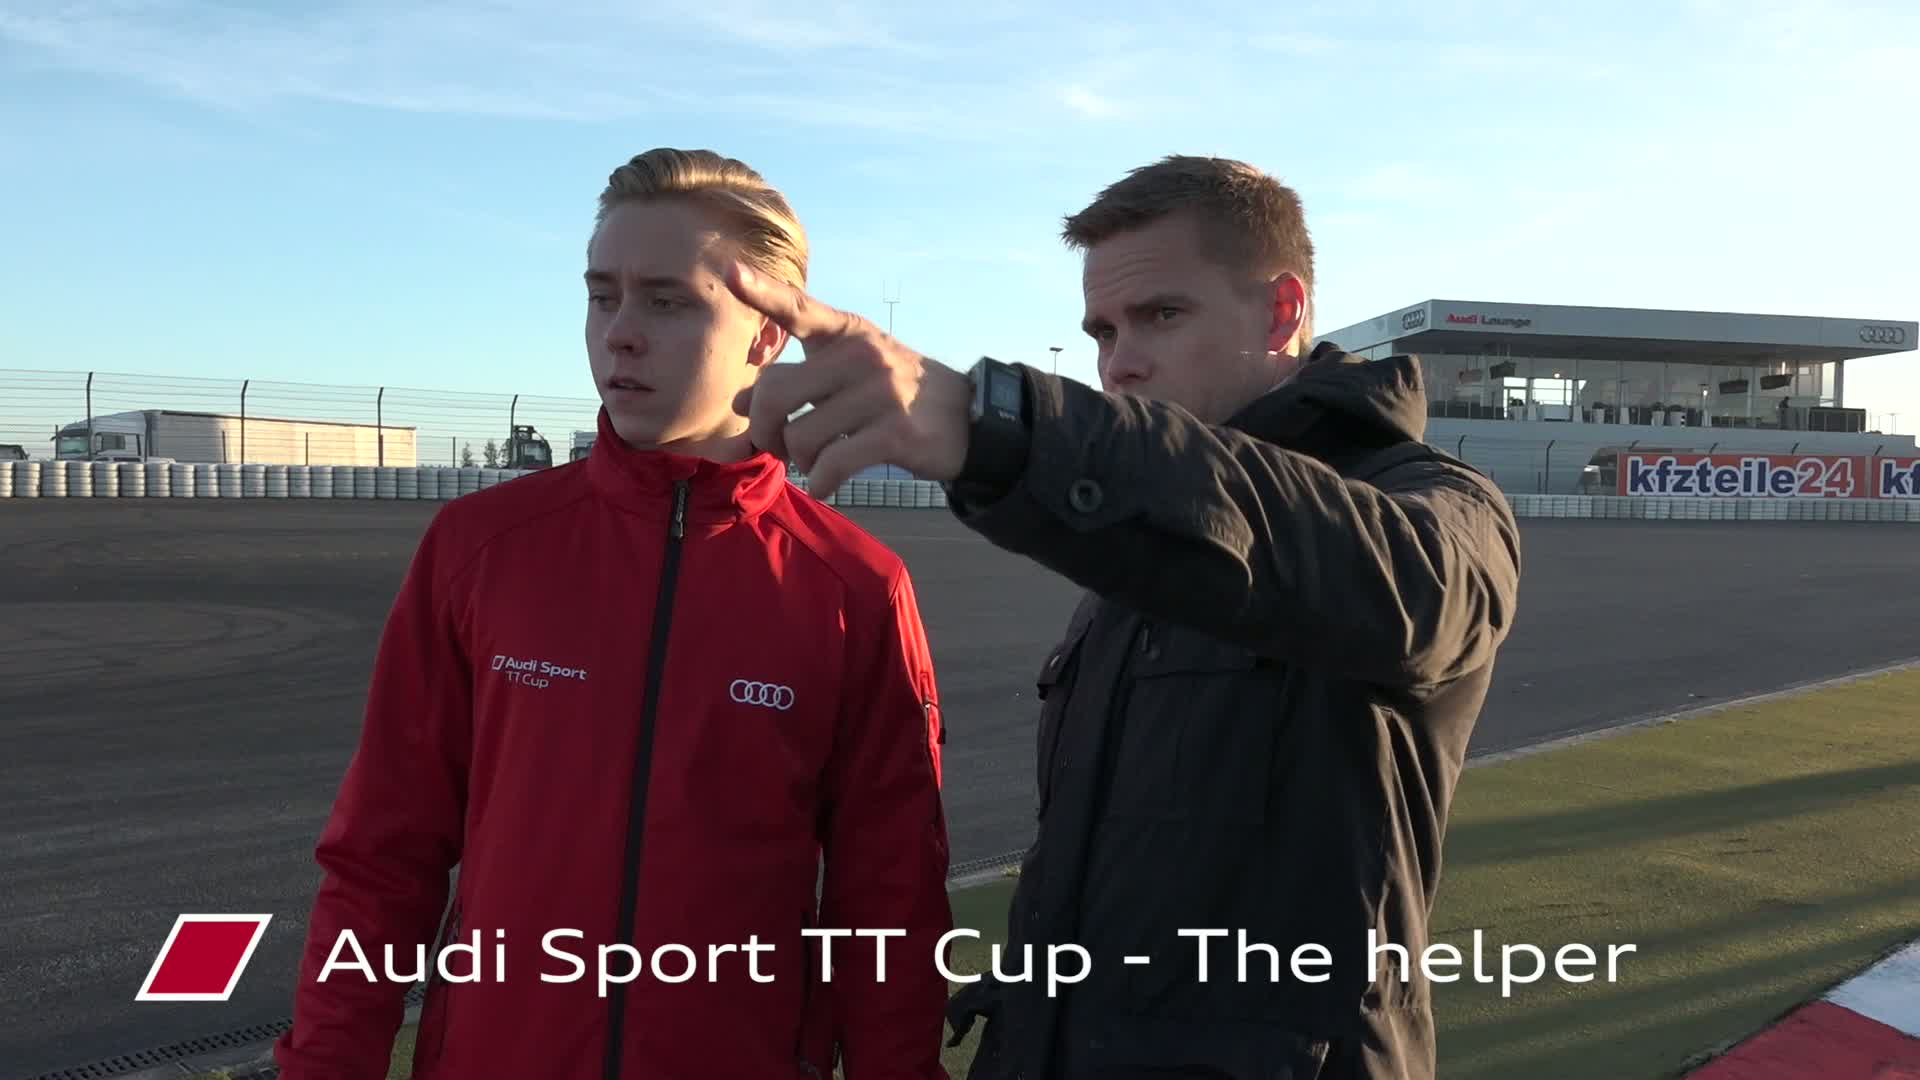 Audi Sport TT Cup – The helper